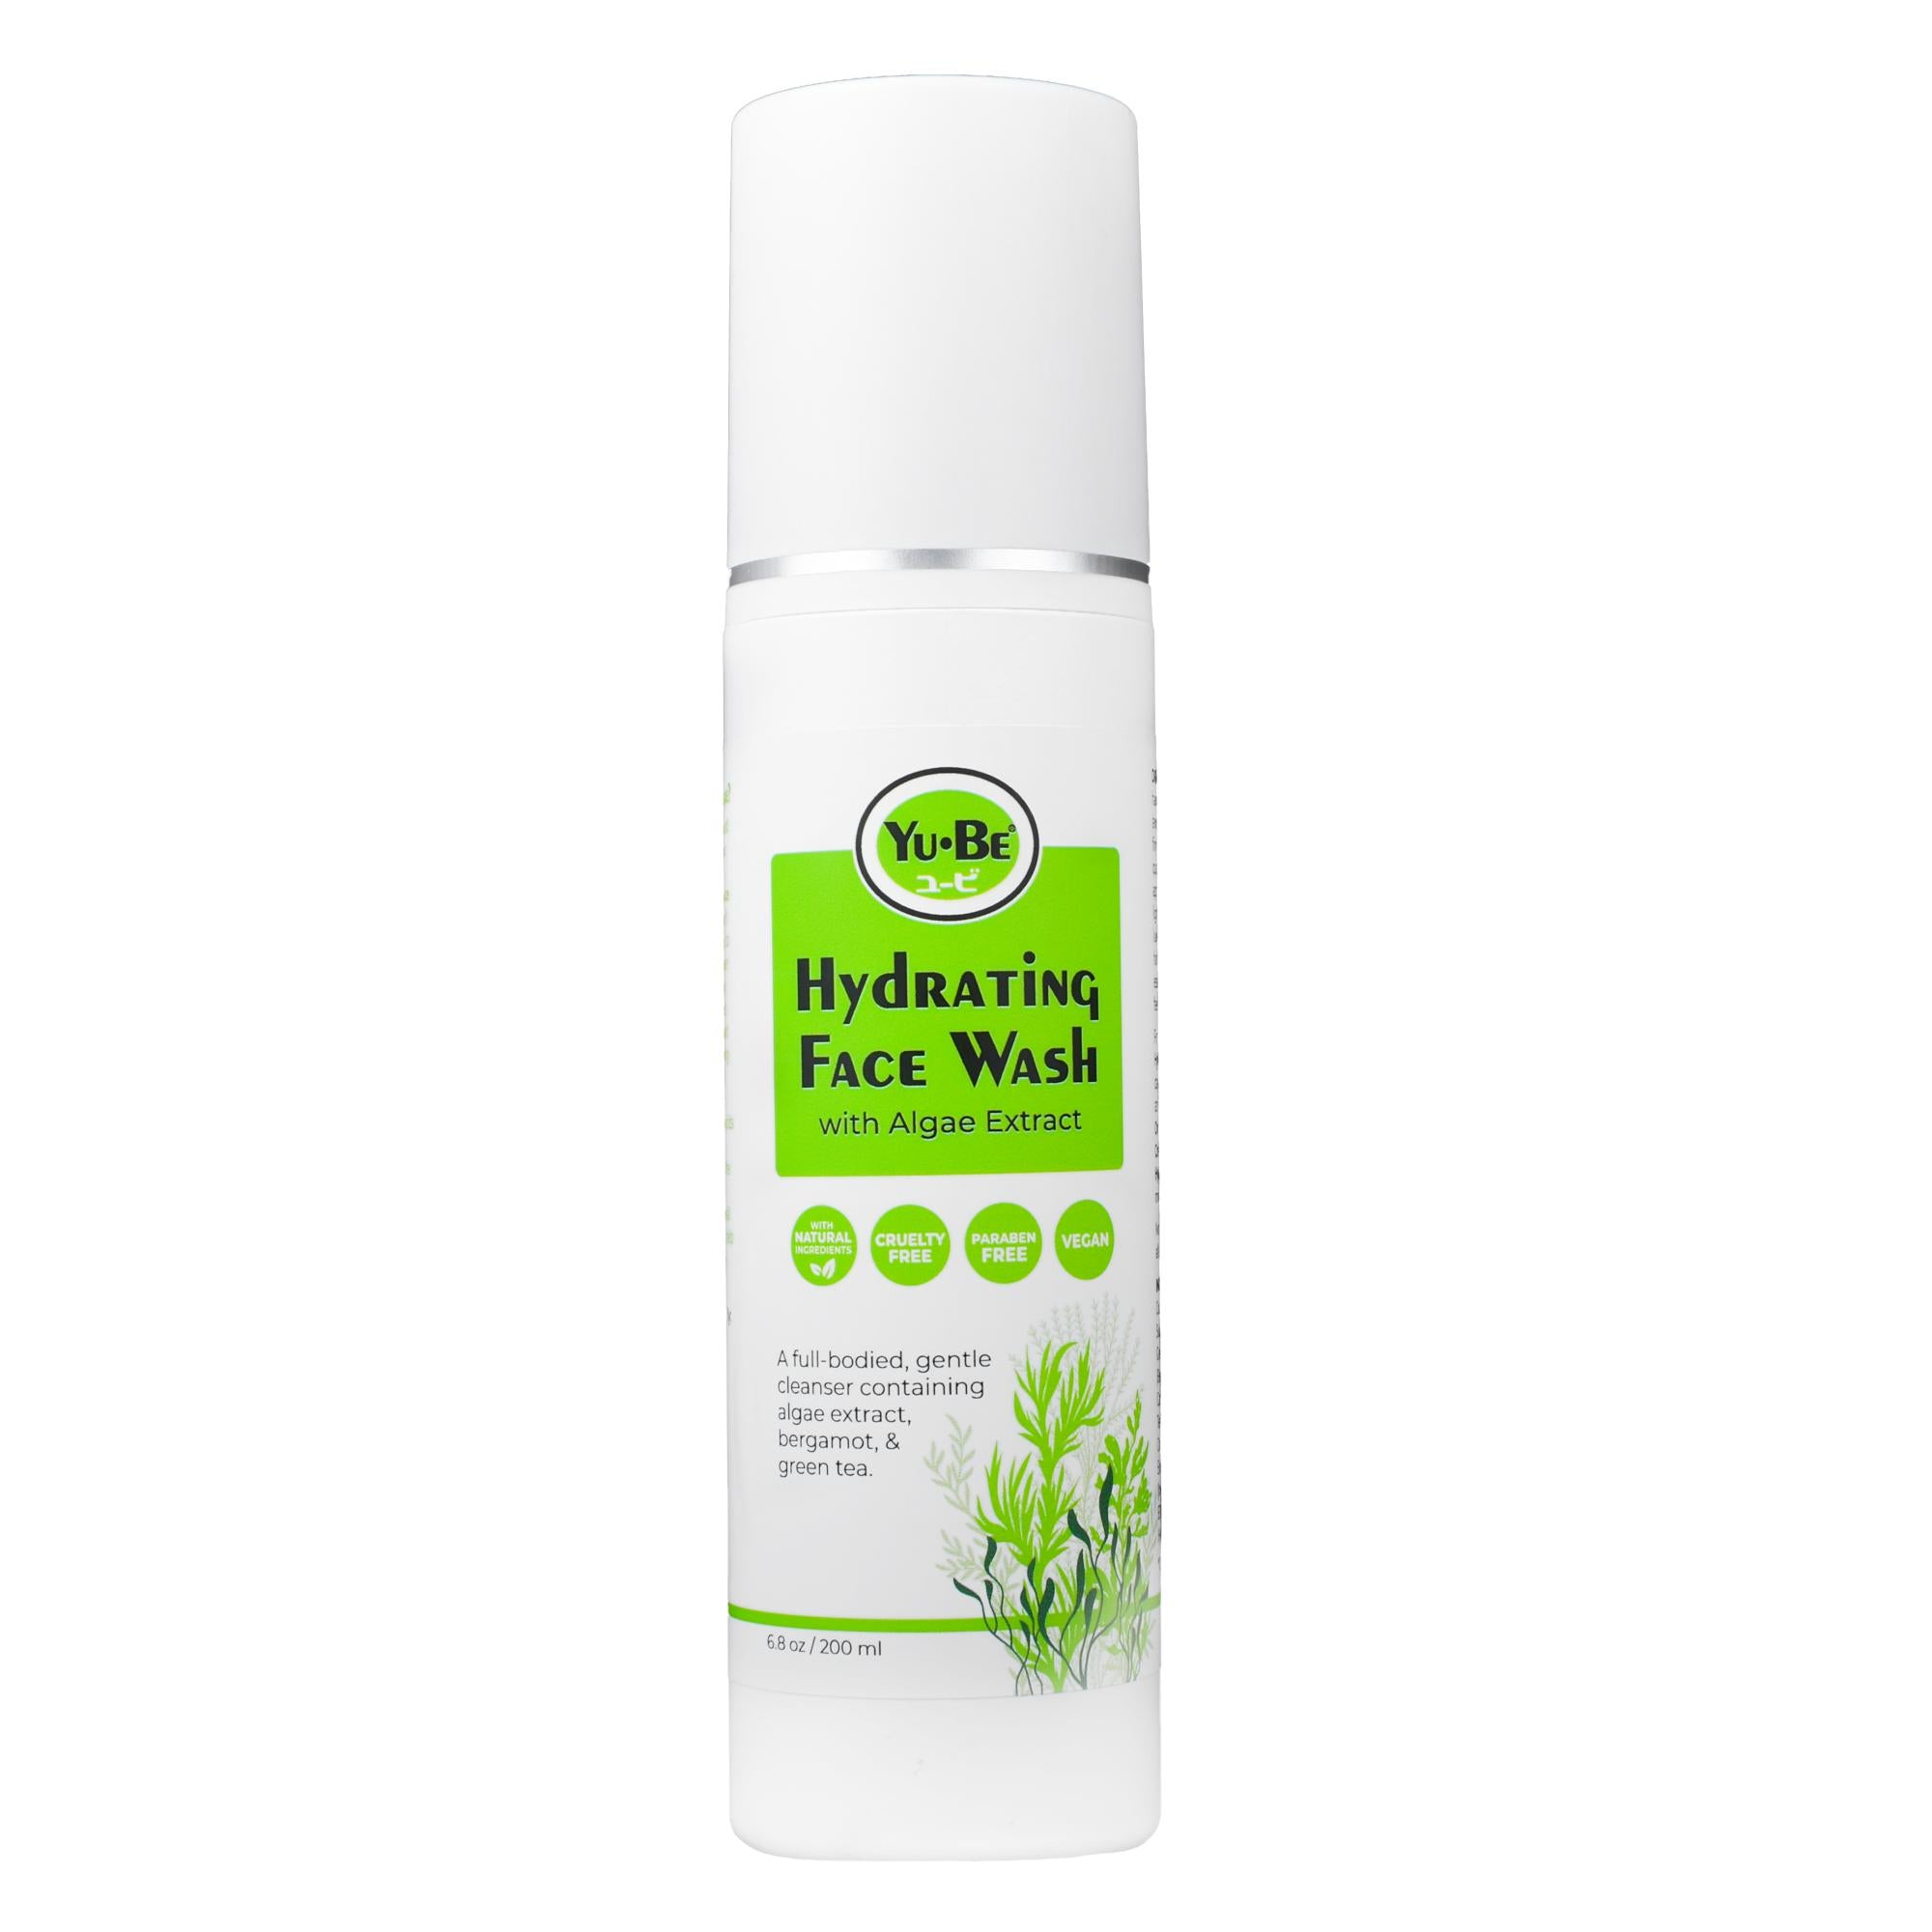 Hydrating Face Wash - Yu-Be